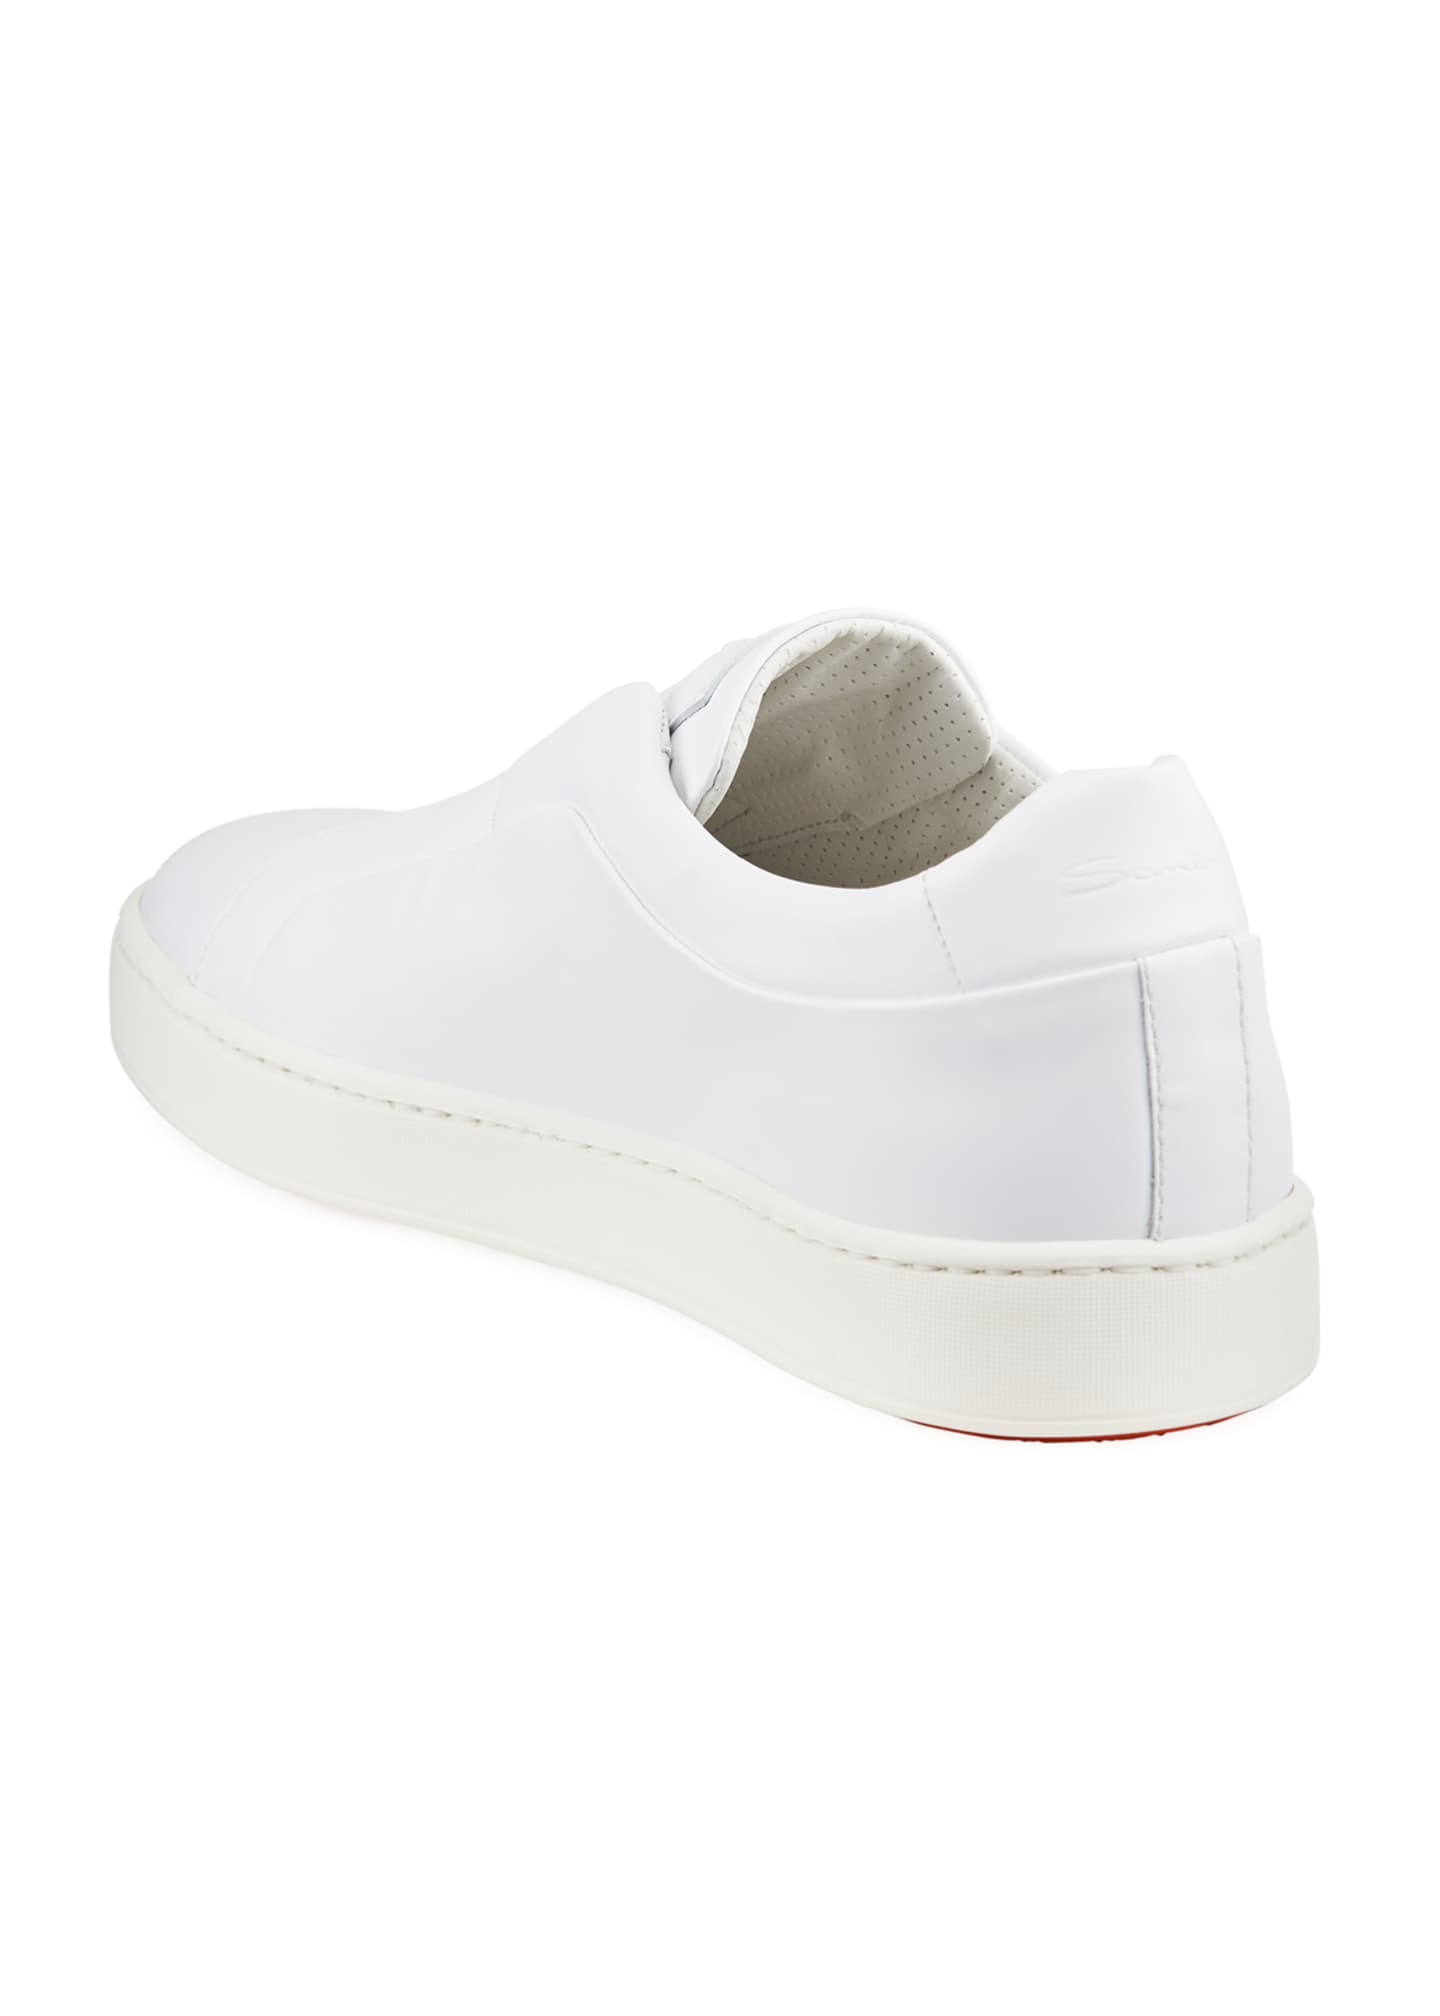 Image 4 of 4: Men's Pass Soft Leather Slip-On Sneakers